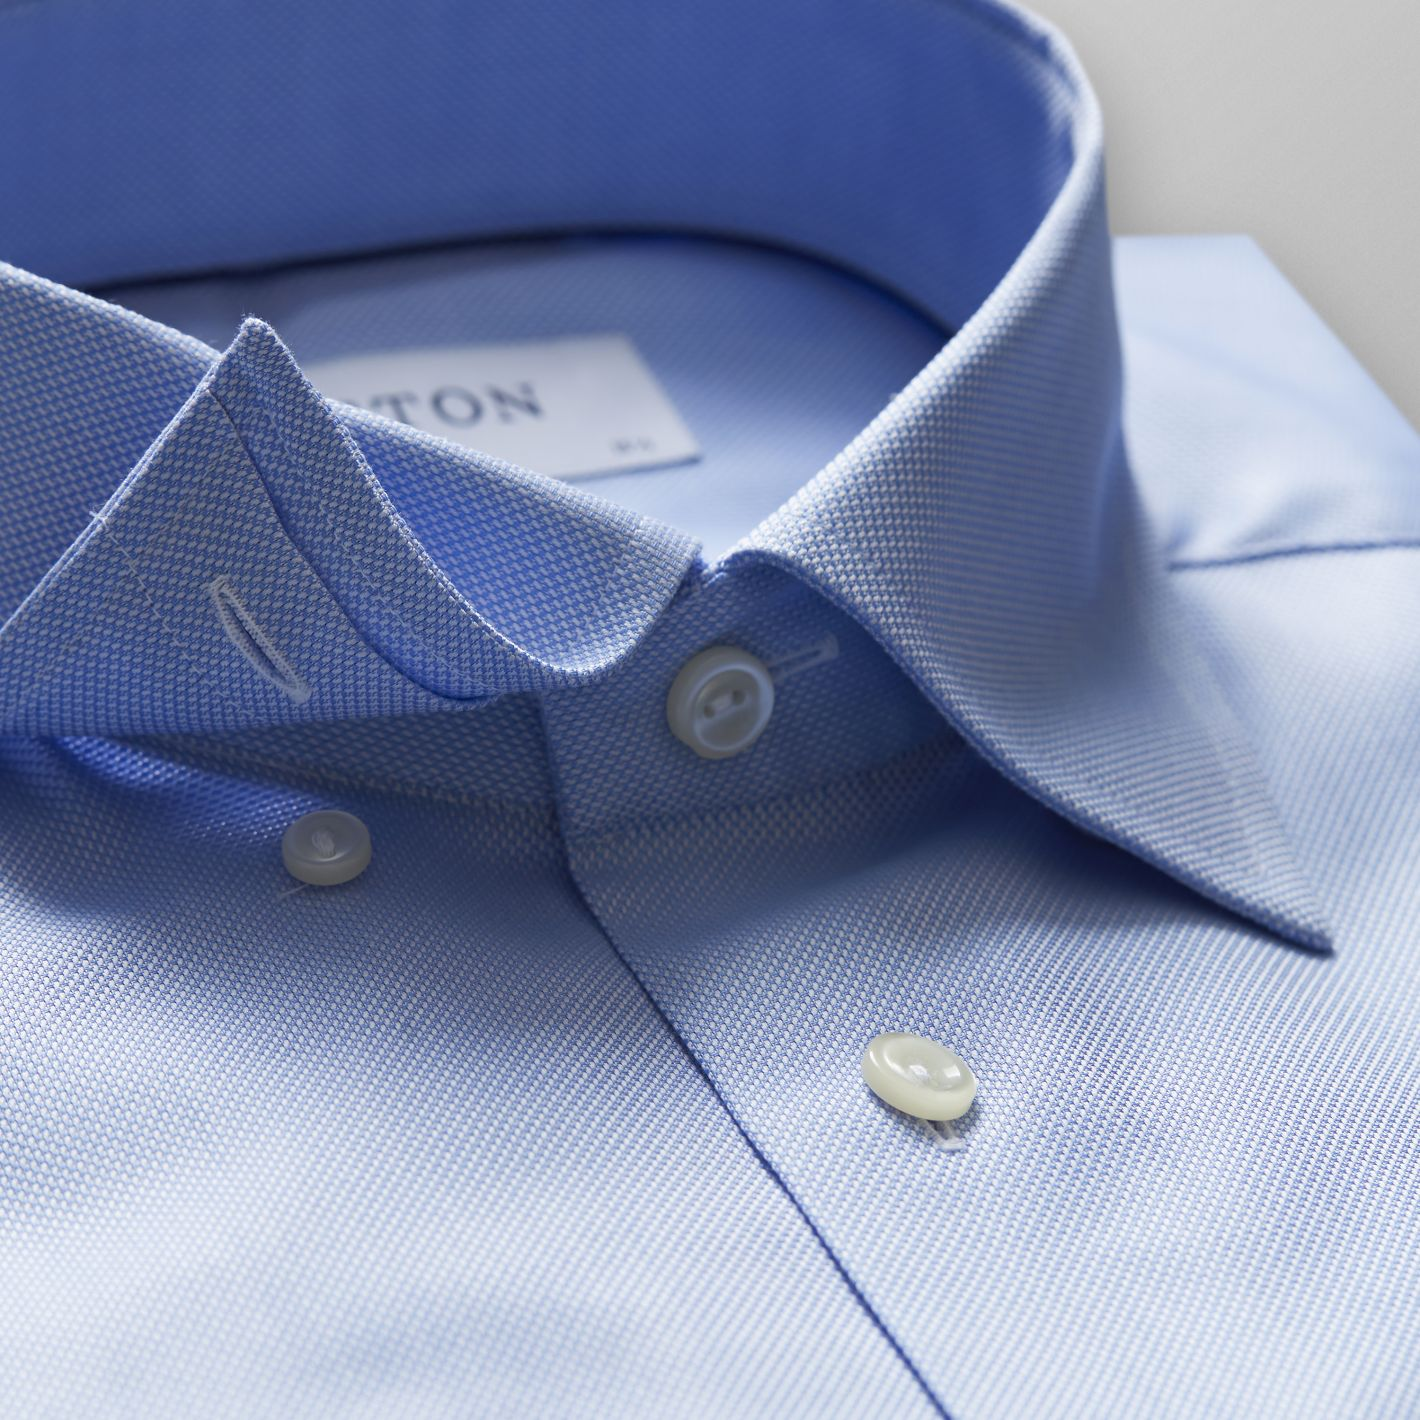 Premium quality formal business men's shirt in sky blue